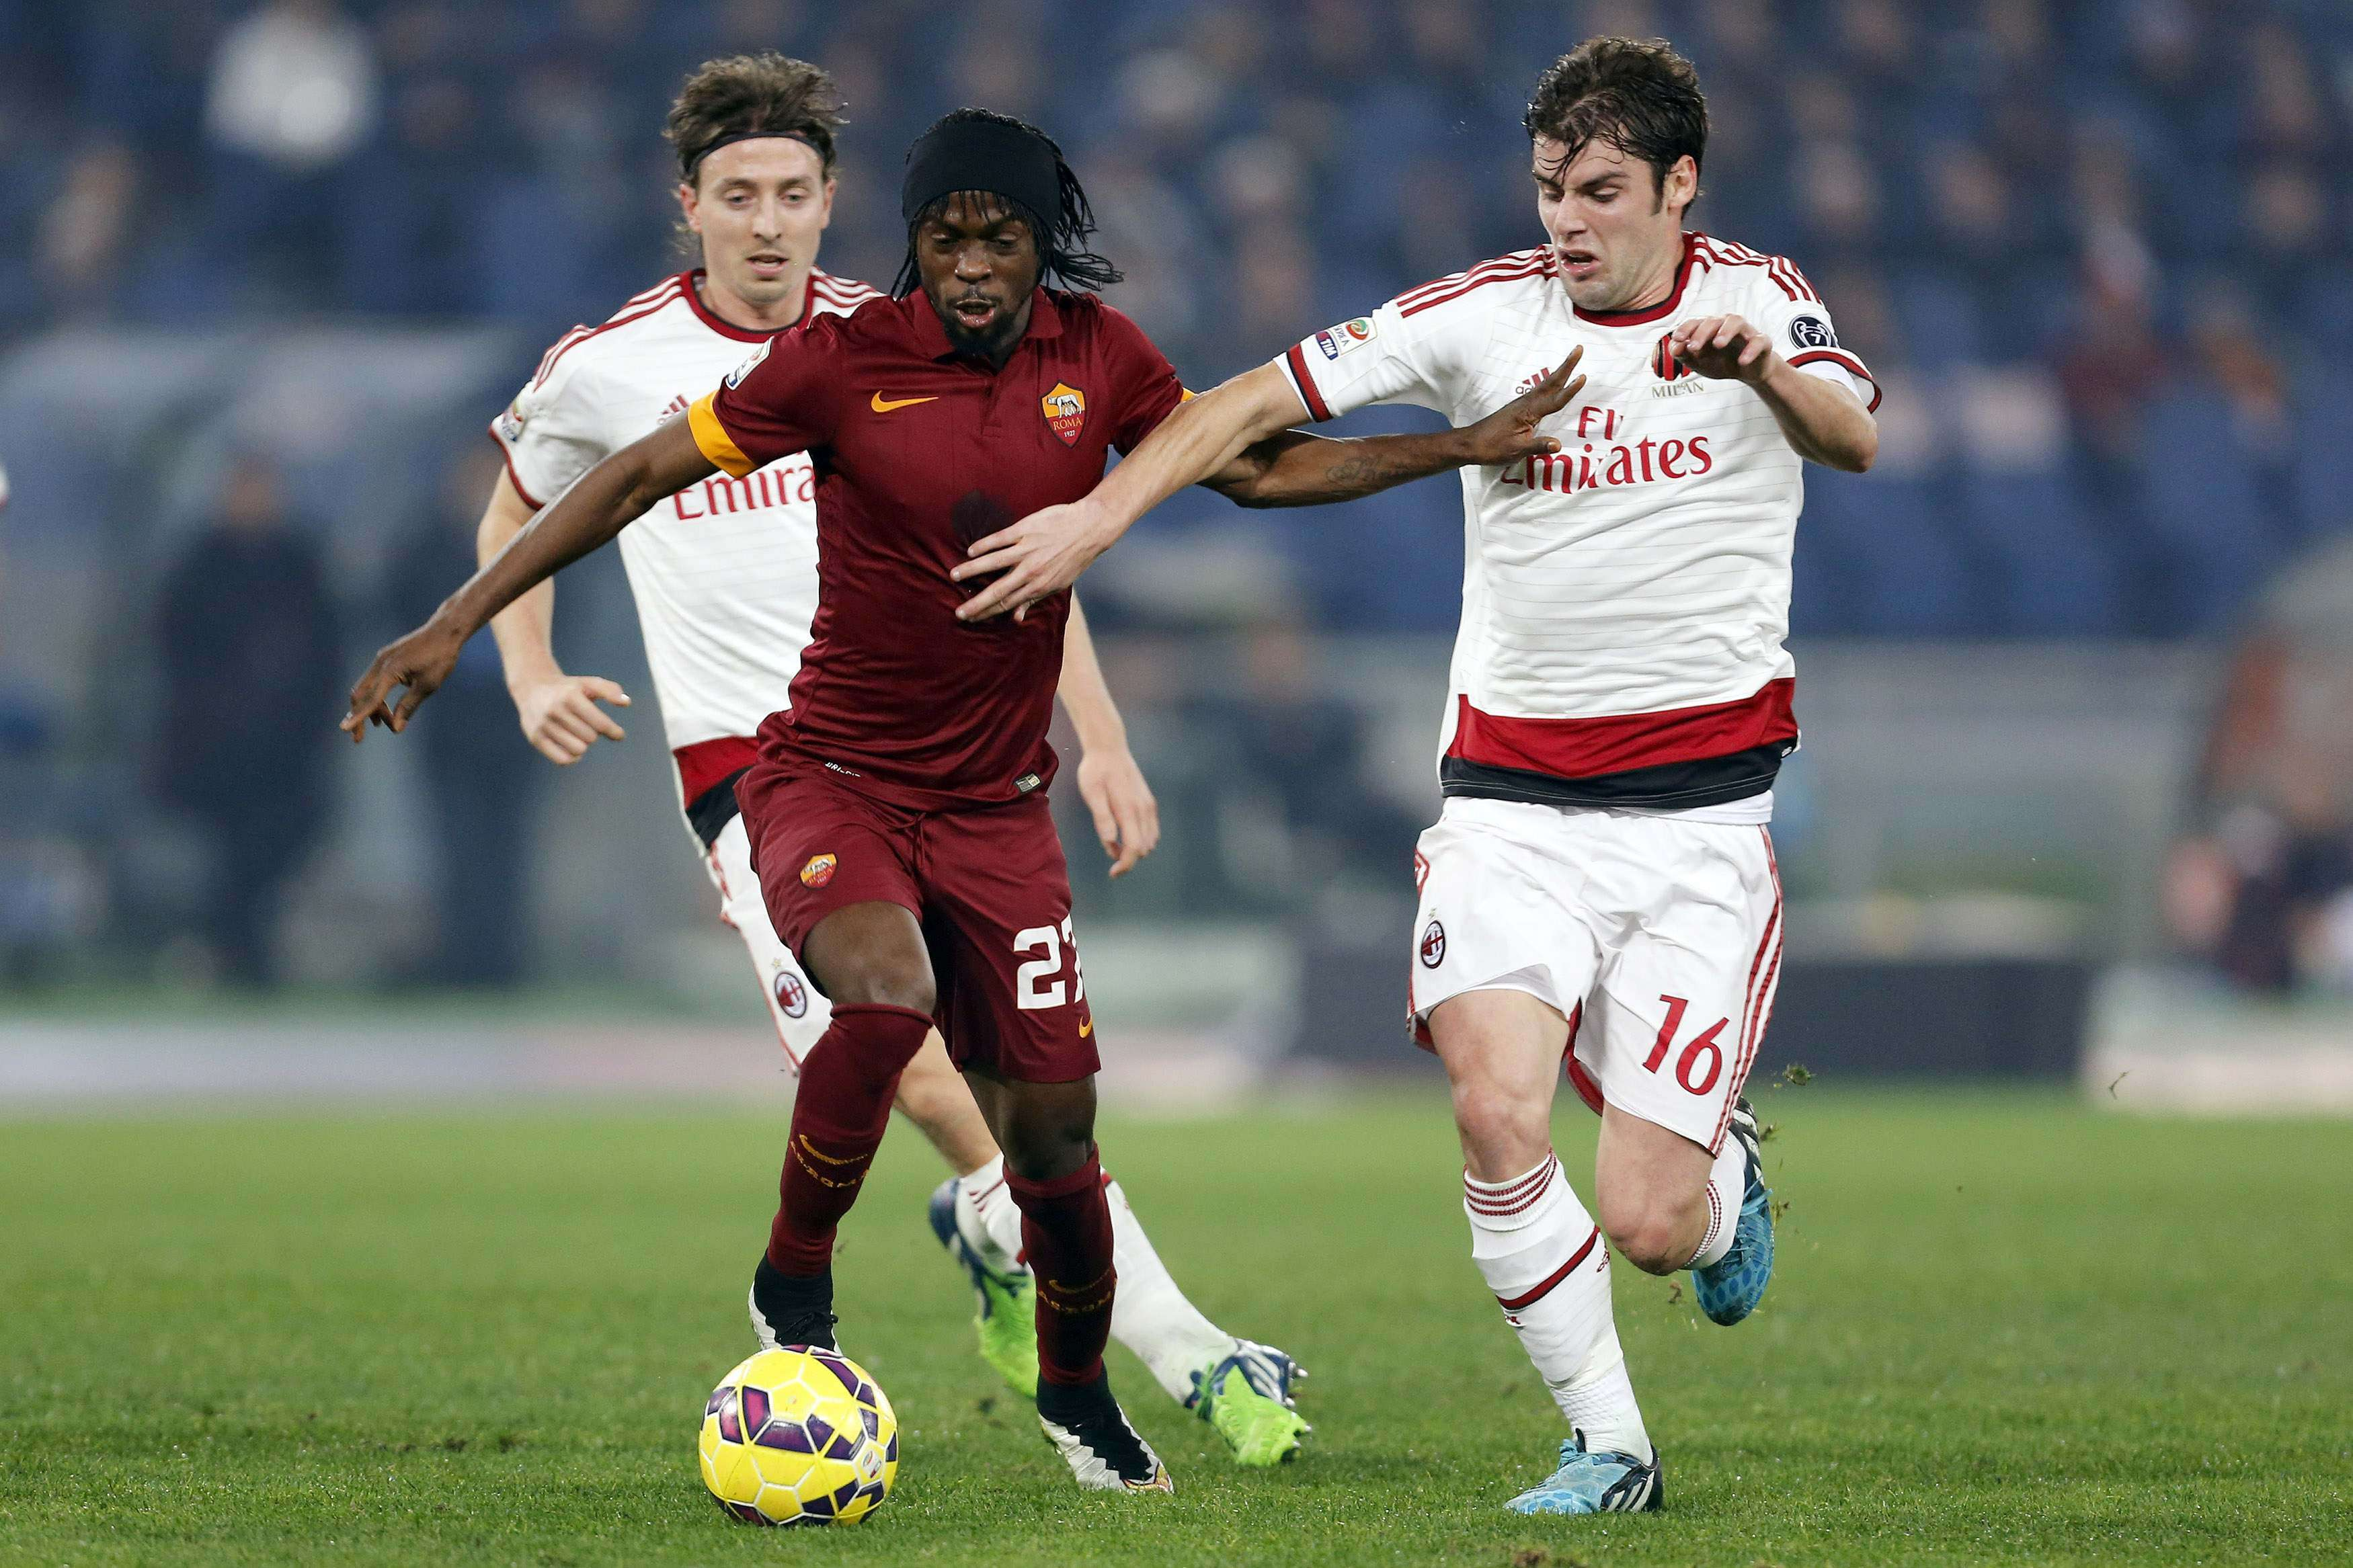 AC Milan's Andrea Poli (R) challenges AS Roma's Gervinho during their Italian Serie A soccer match at the Olympic stadium in Rome, December 20, 2014. REUTERS/Giampiero Sposito (ITALY - Tags: SPORT SOCCER) Foto: GIAMPIERO SPOSITO/REUTERS